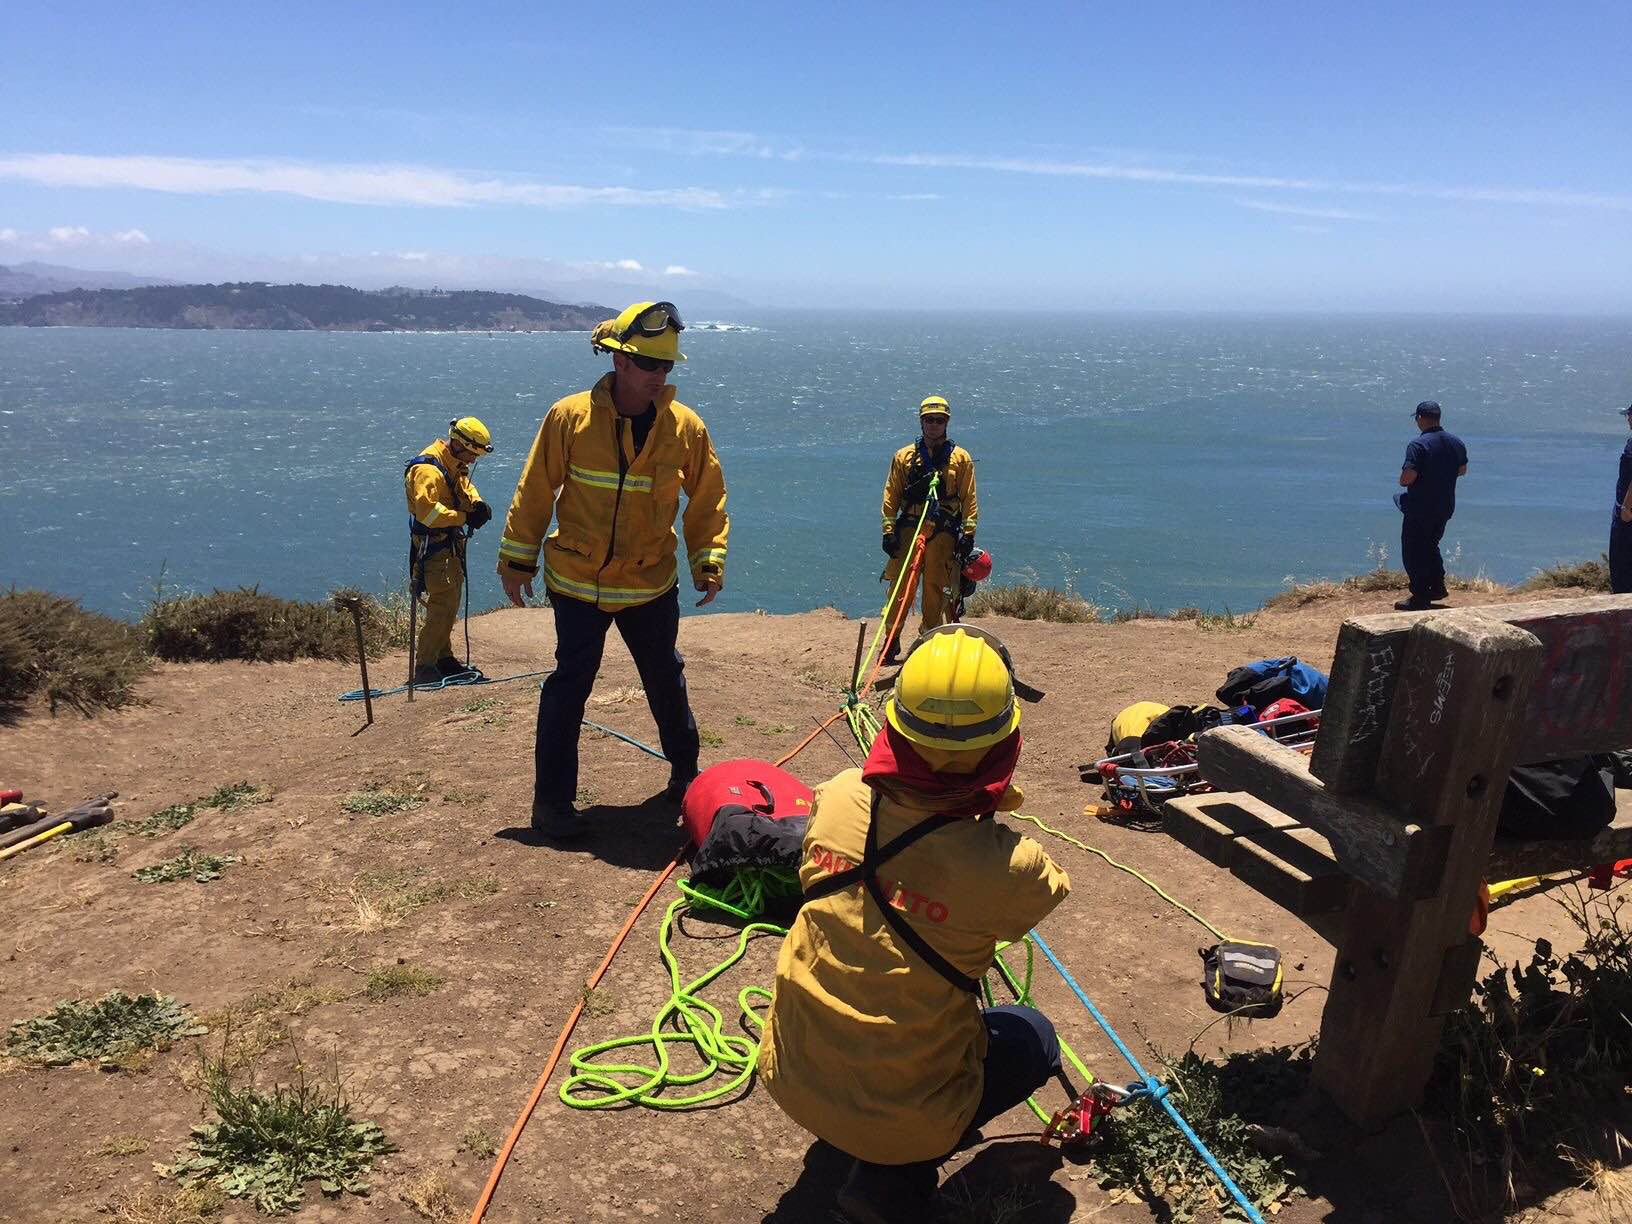 Firefighters help rescue man from cliff.